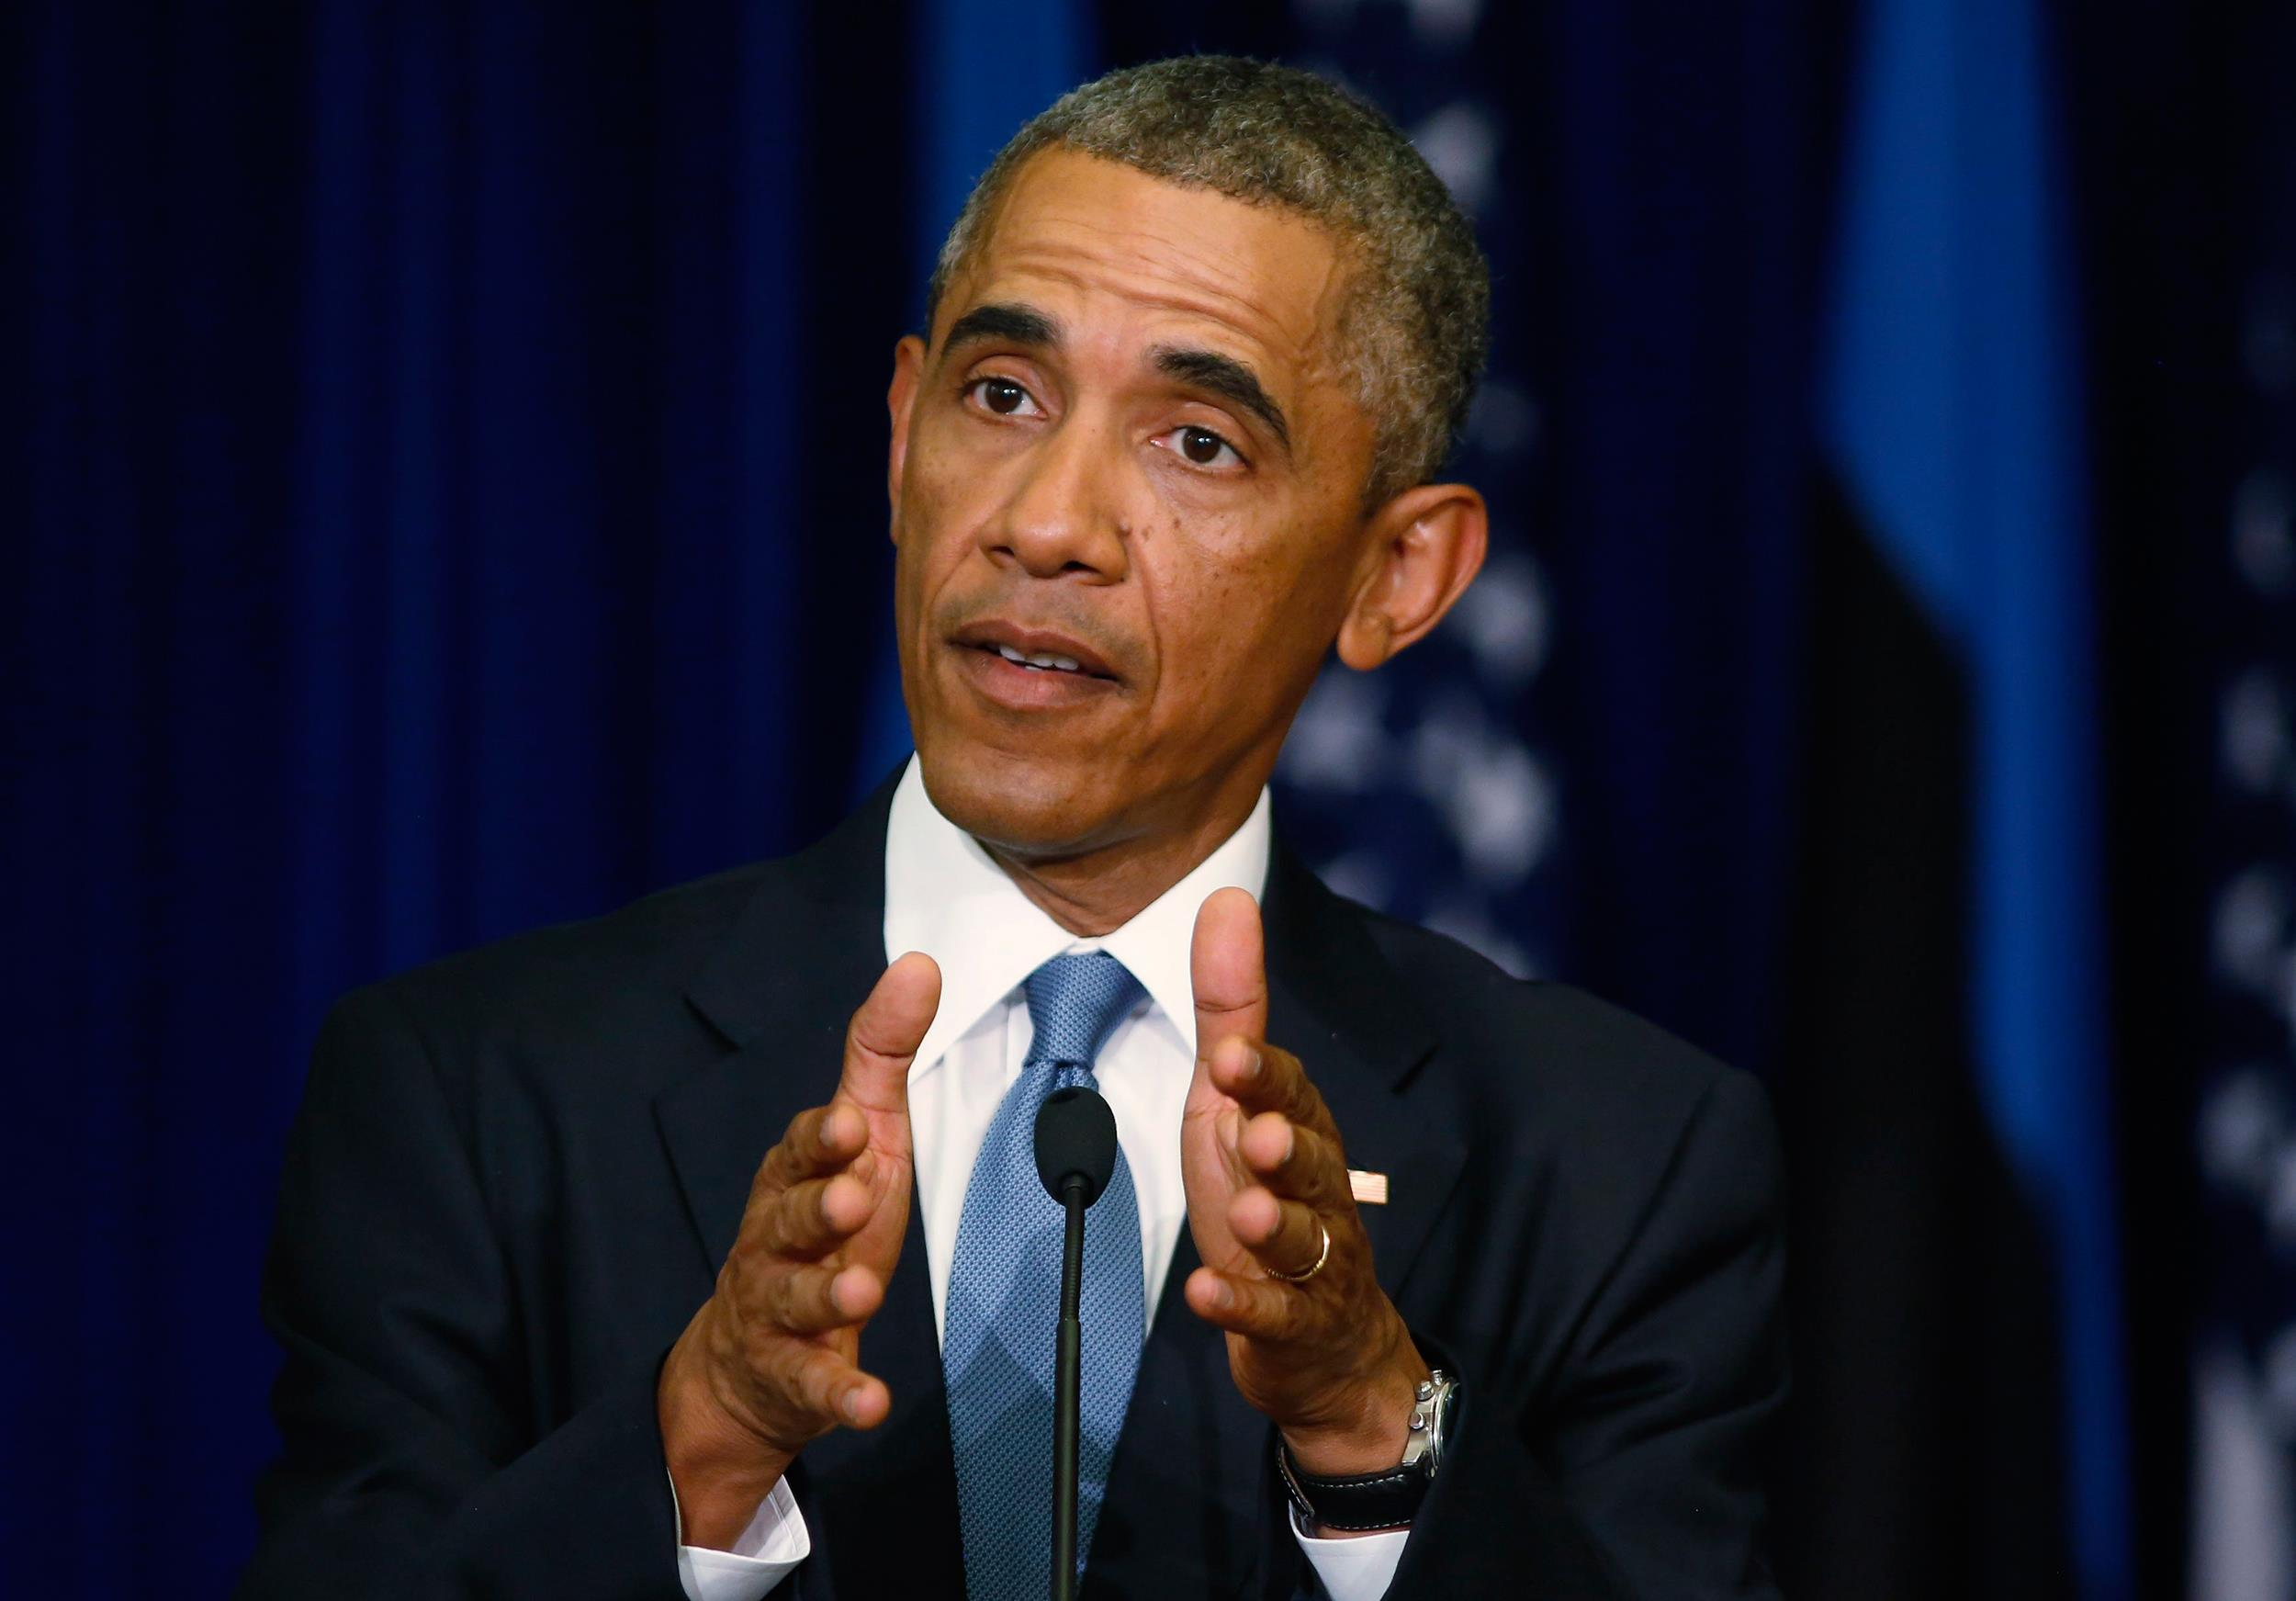 Image: U.S. President Obama talks during a news conference at the Bank of Estonia in Tallinn